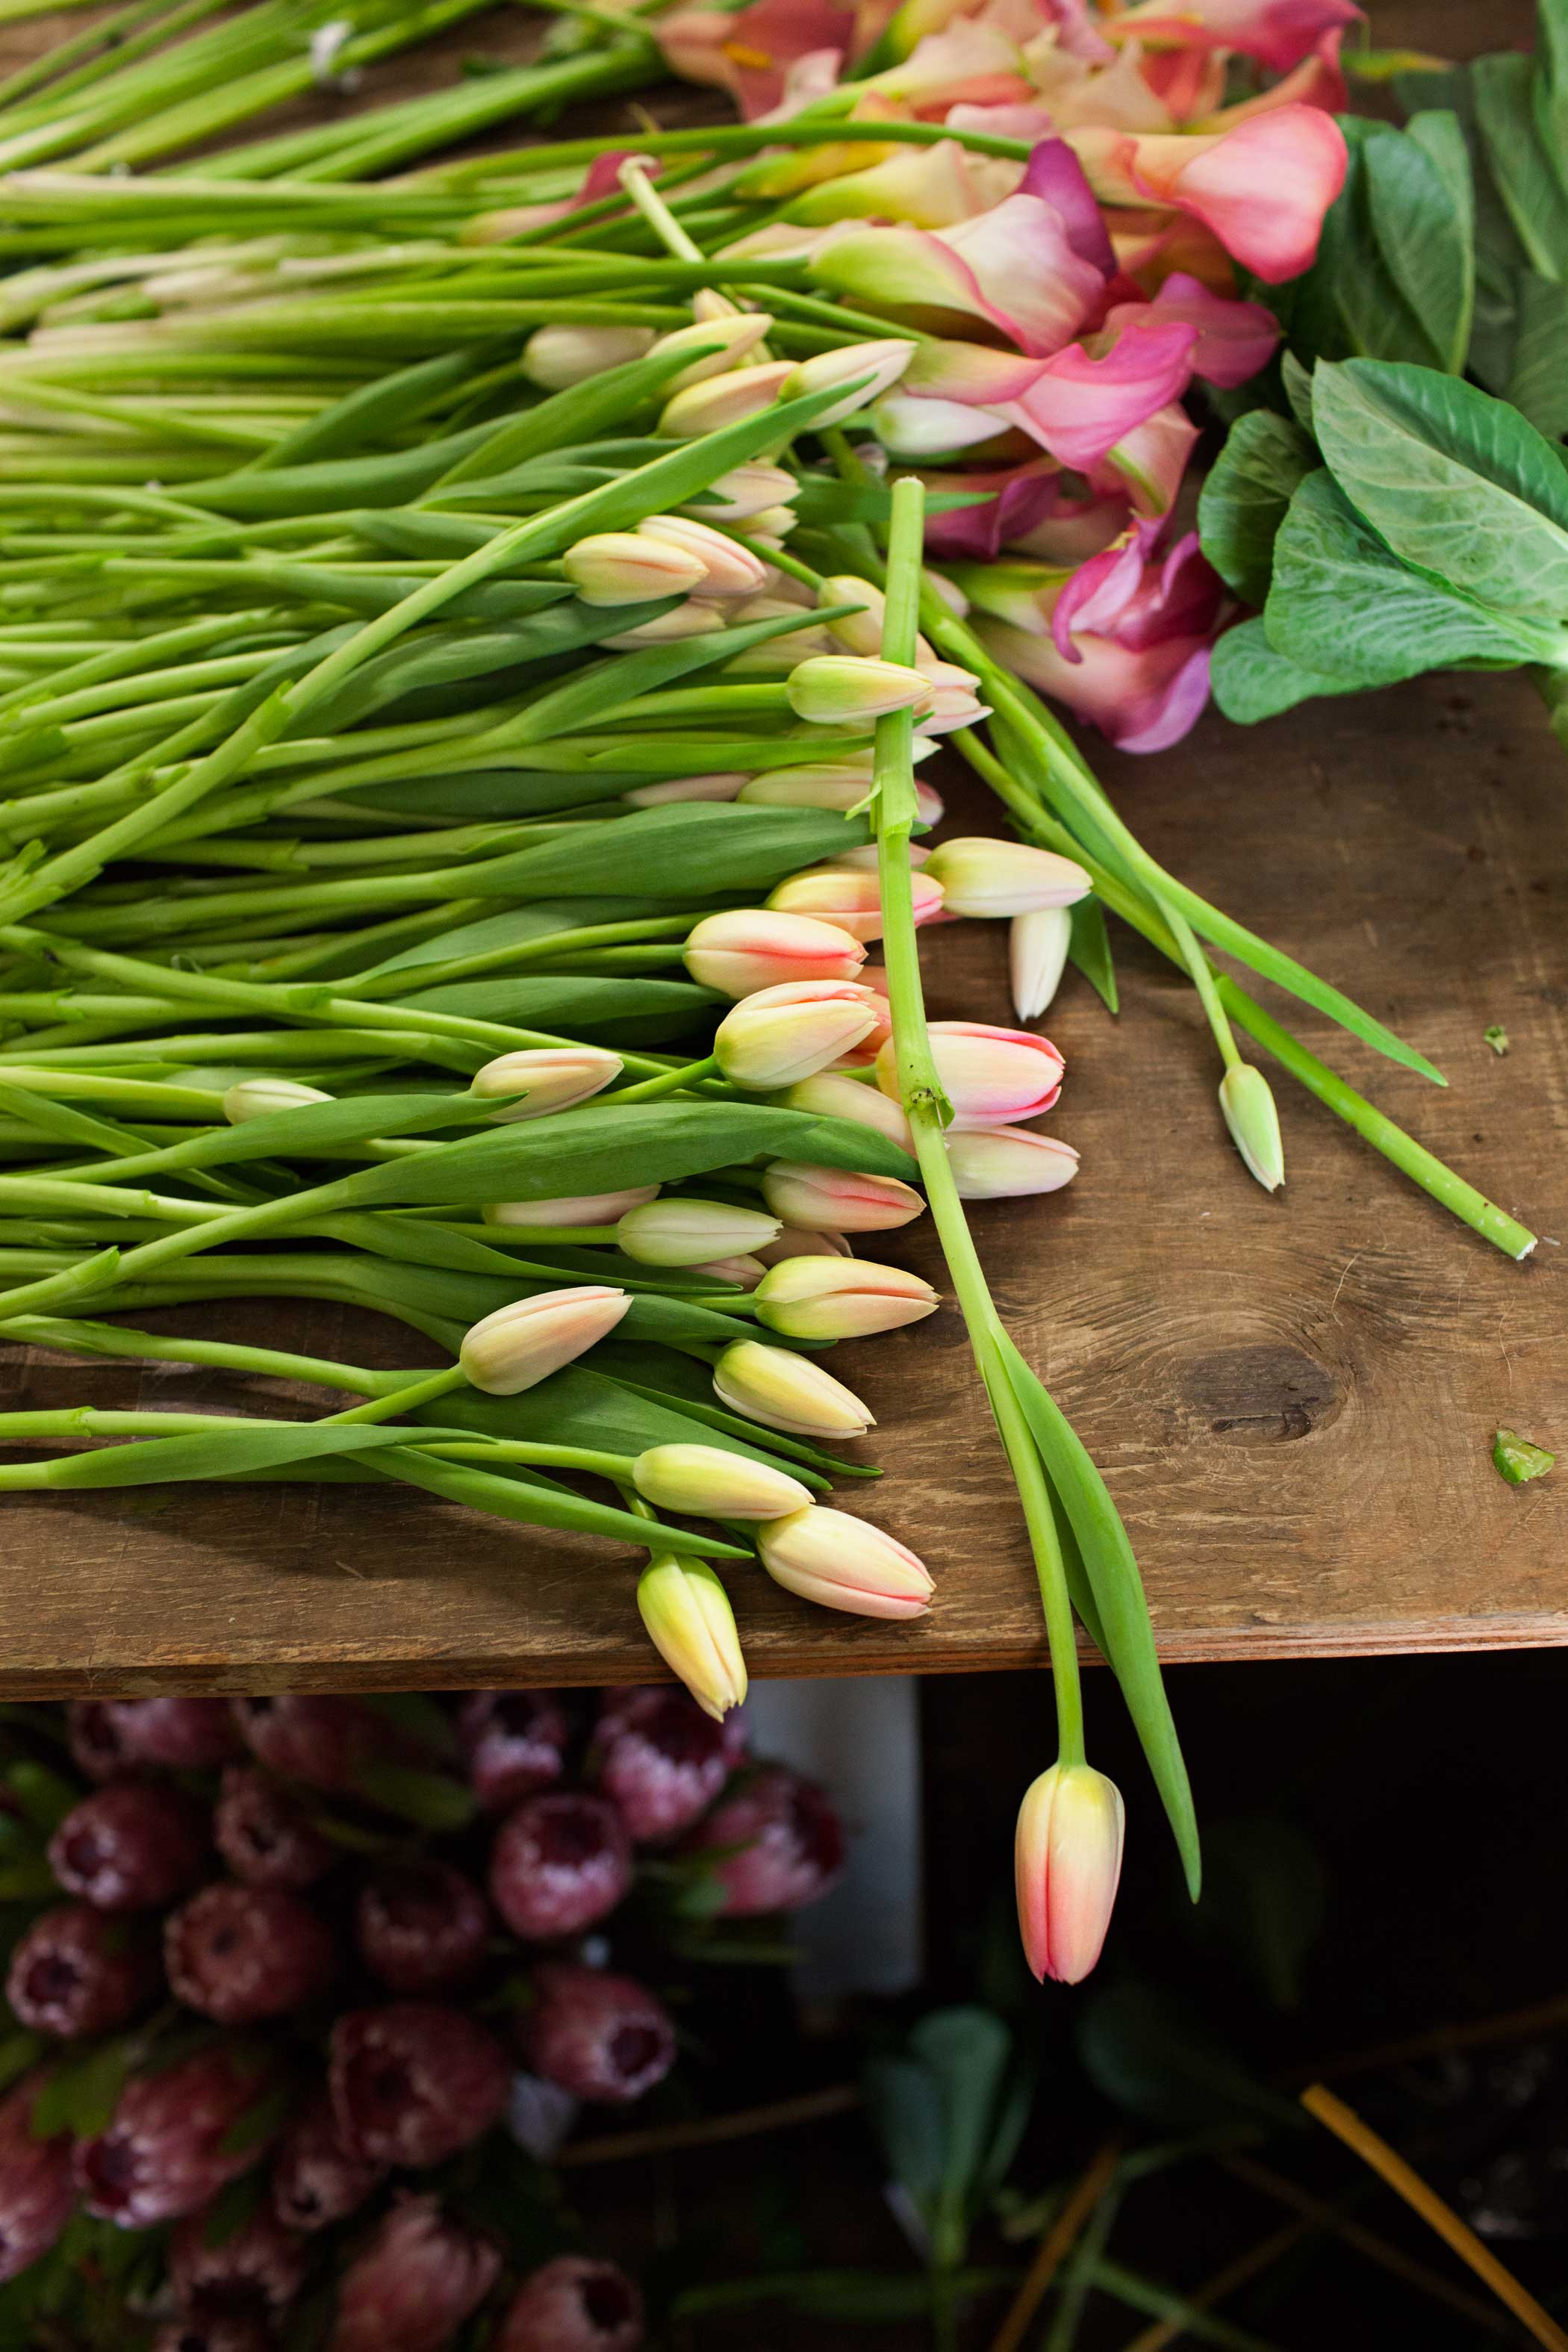 Tulips lie on the table before being added to arrangements.